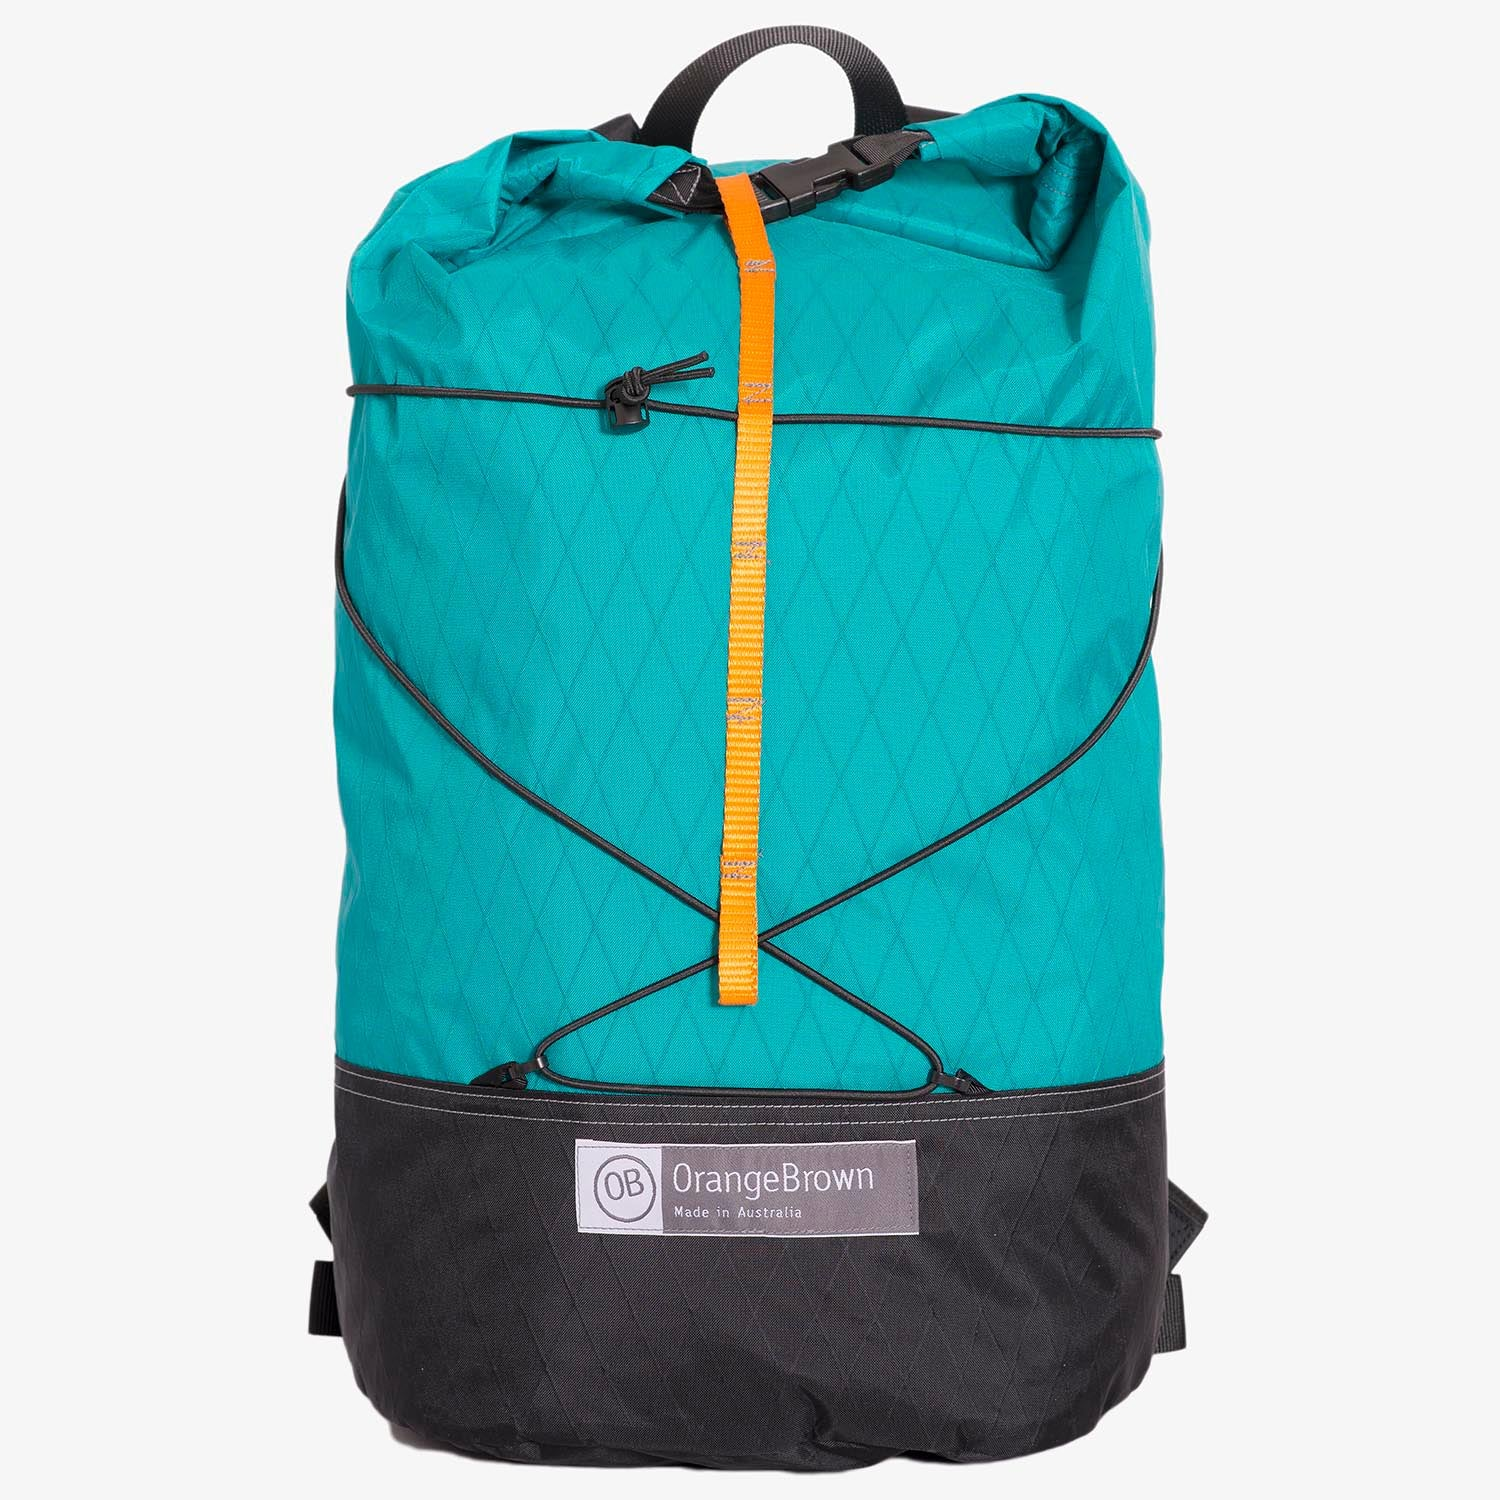 Frontal view of ultralight day pack with roll closure in teal-black. Handmade in Australia from X-Pac fabrics.